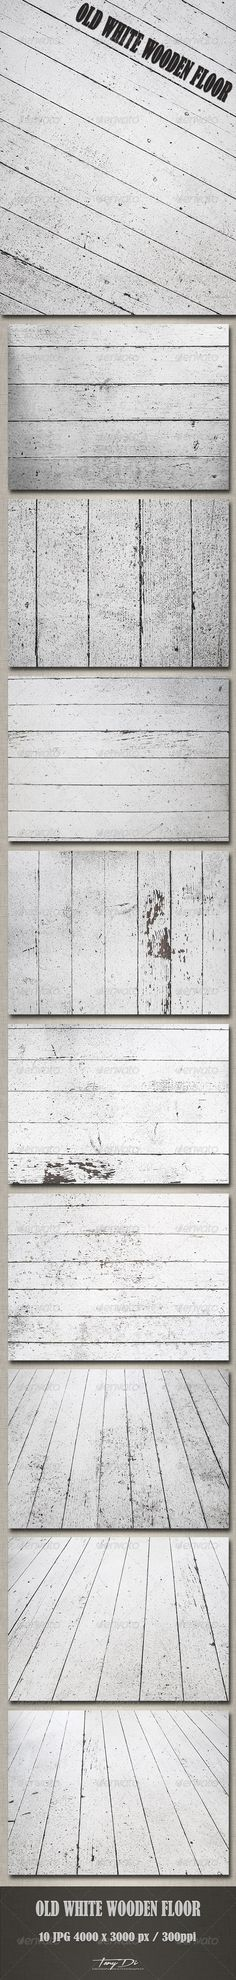 Old White Wooden Floor | Urban Textures | TanyDi Boutique Design Studio